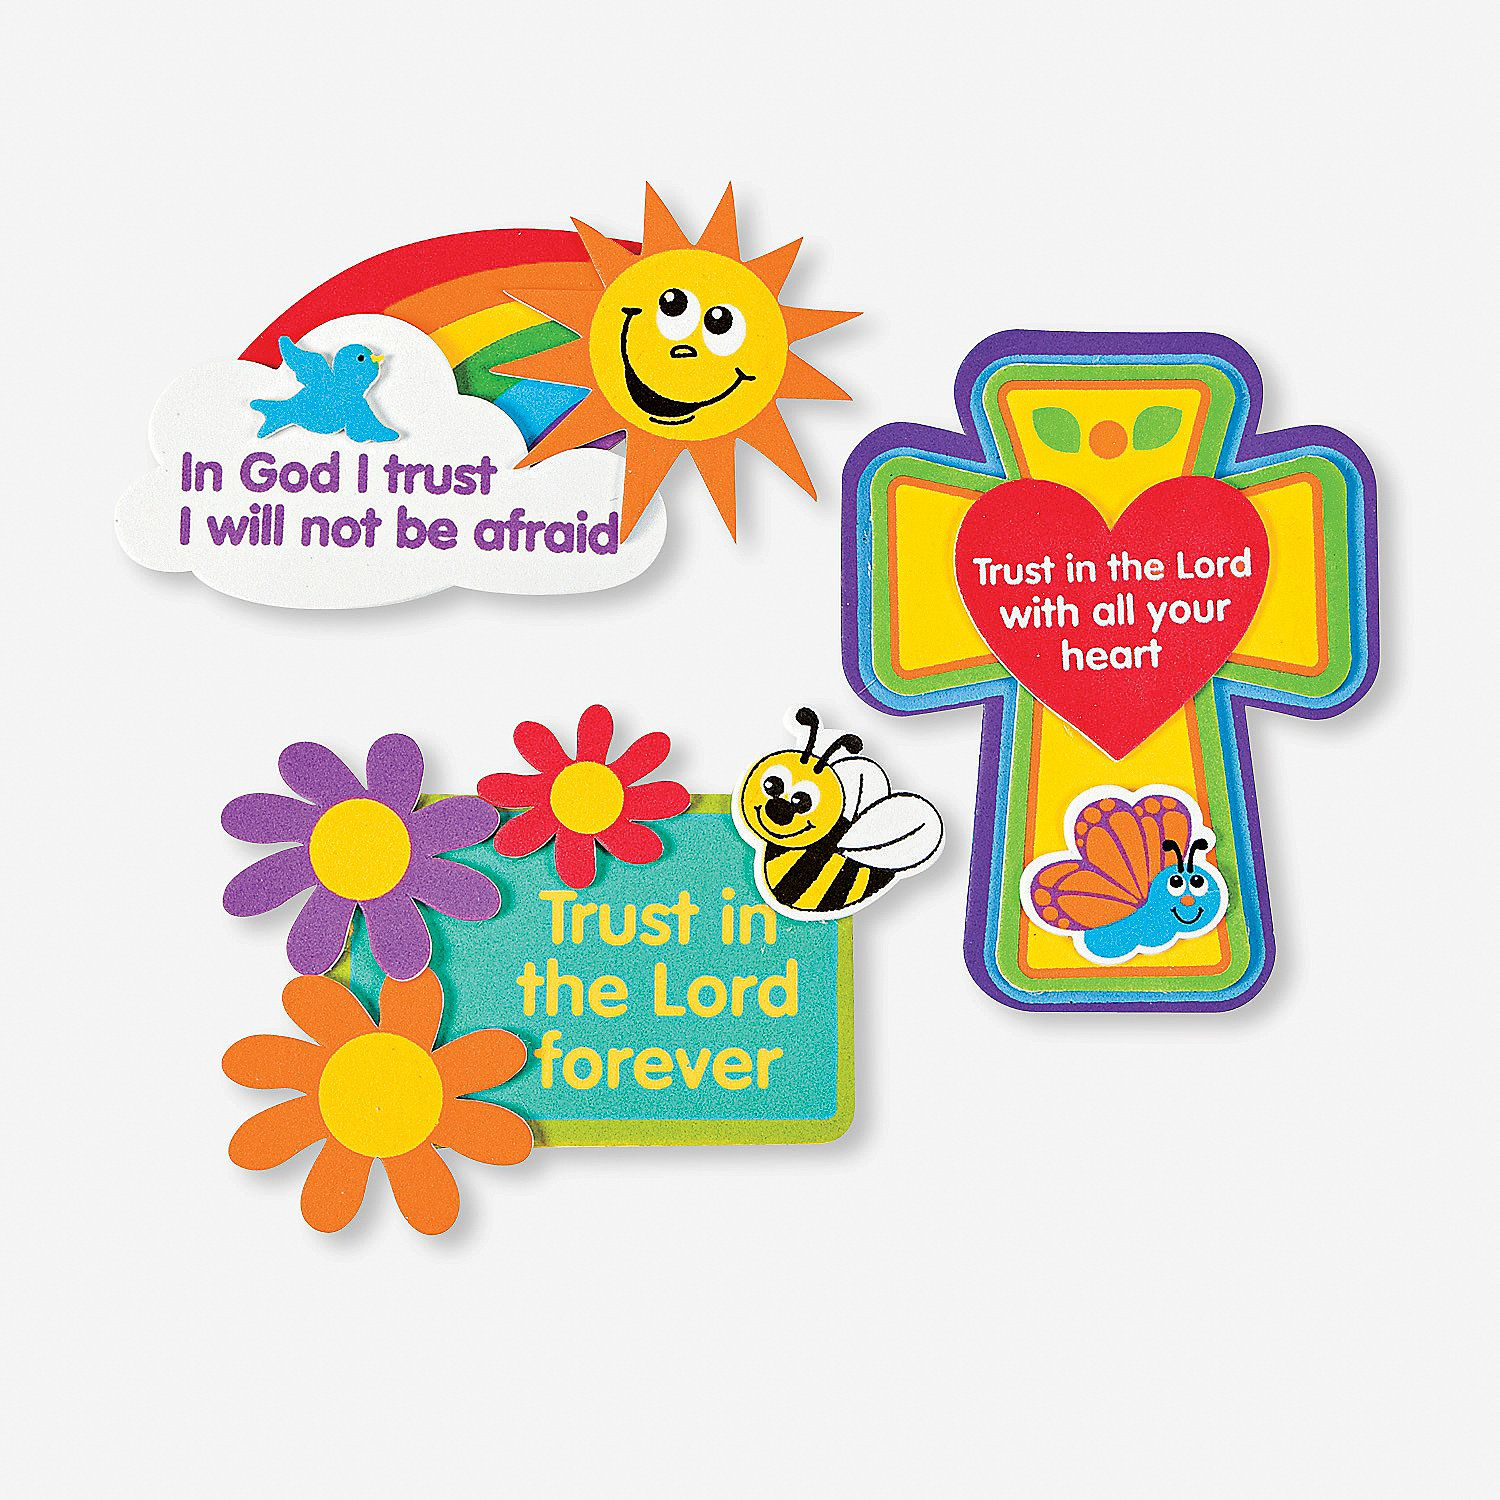 Oriental trading christian crafts -  Trust In The Lord Magnet Craft Kit Orientaltrading Com 5 50 Makes 12